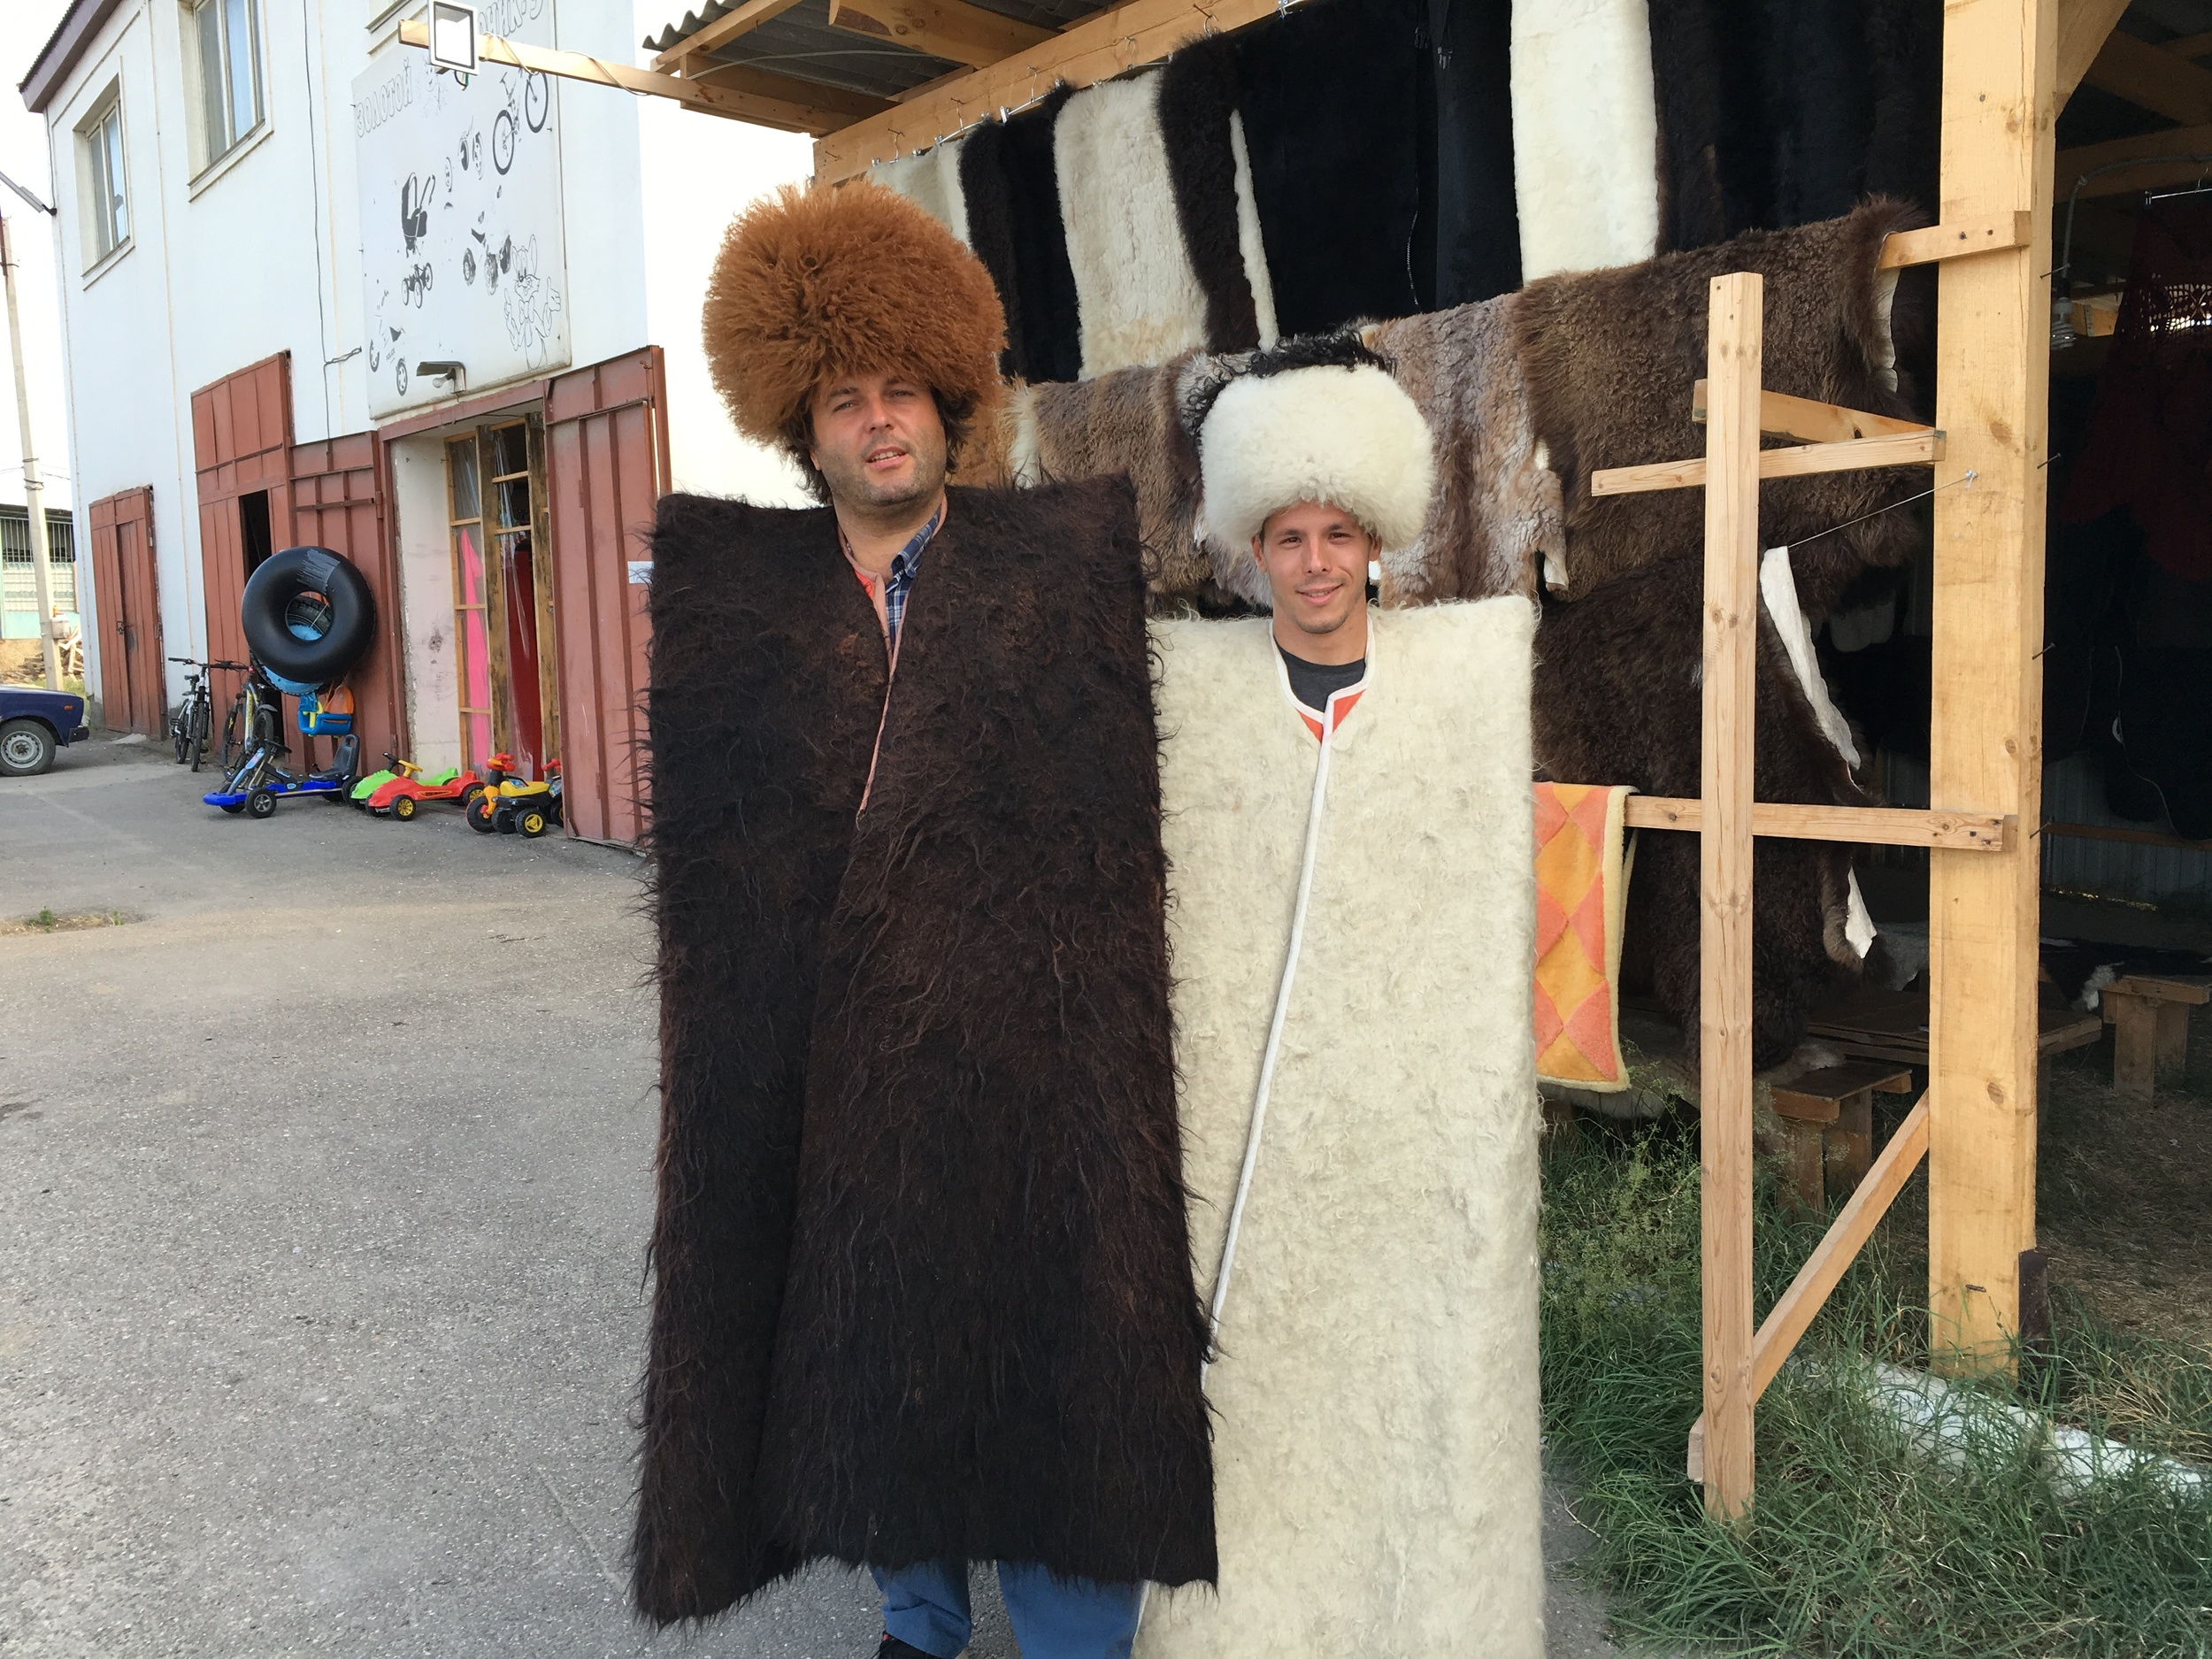 Vova and Mike trying some traditional fur clothing at a roadside stand selling furs.